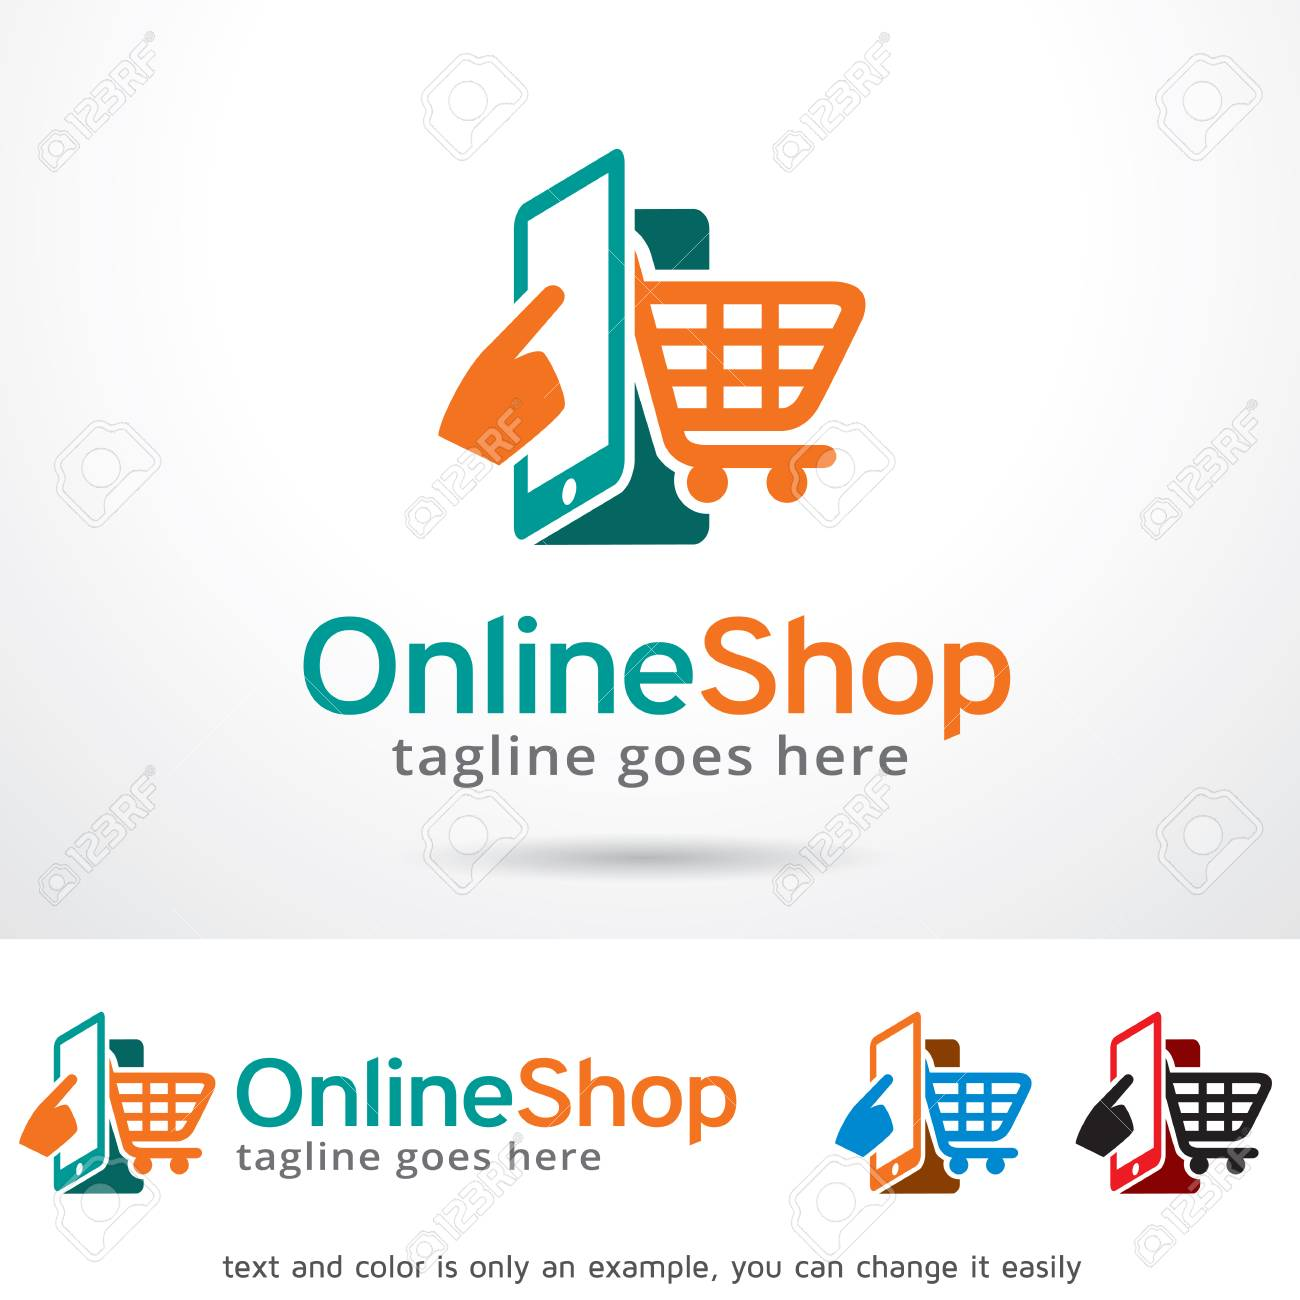 Design Online Shop Online Shop Logo Template Design Vector